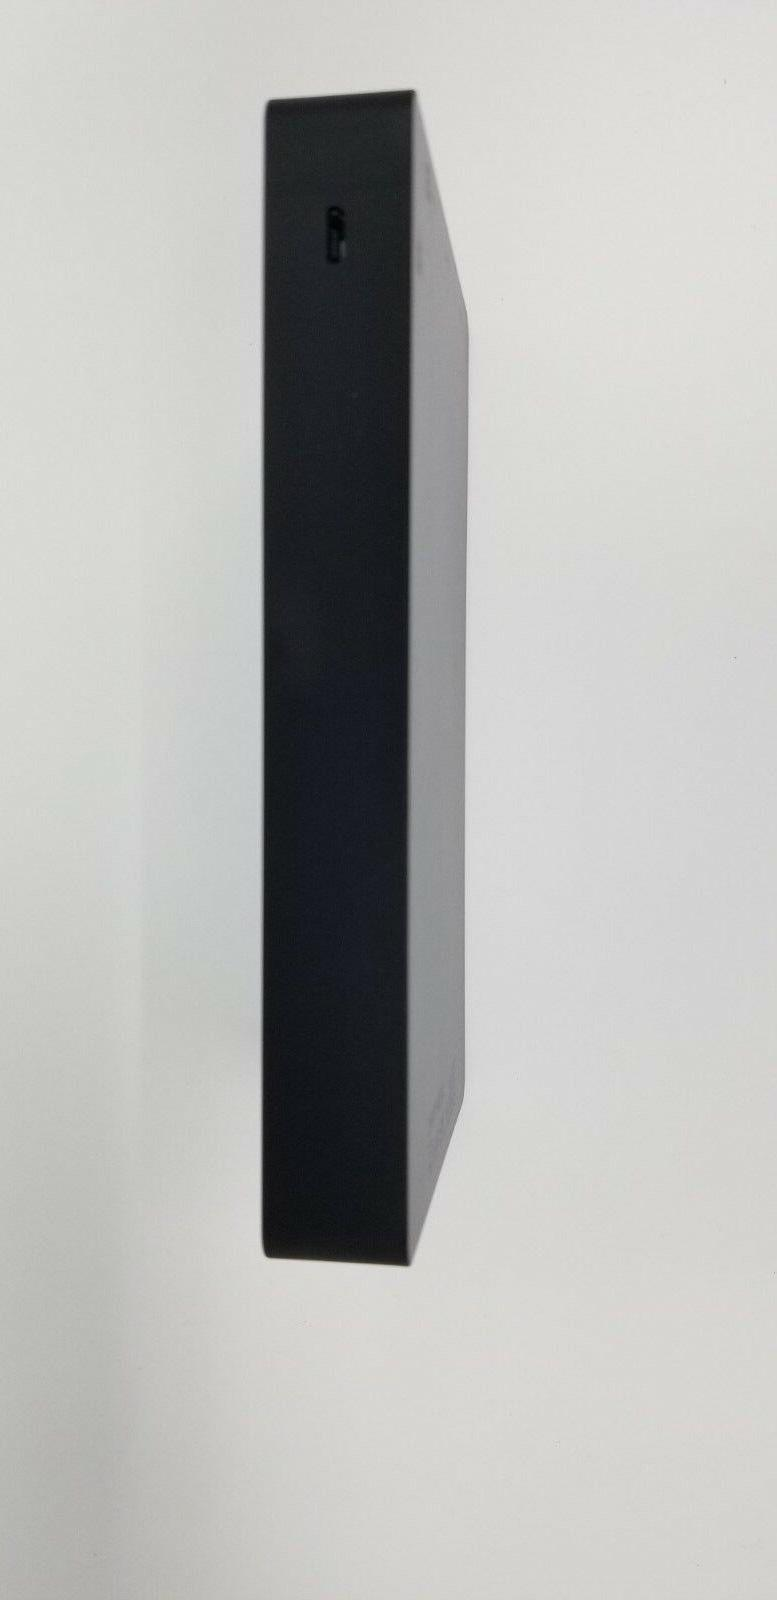 Mophie Universal Charger